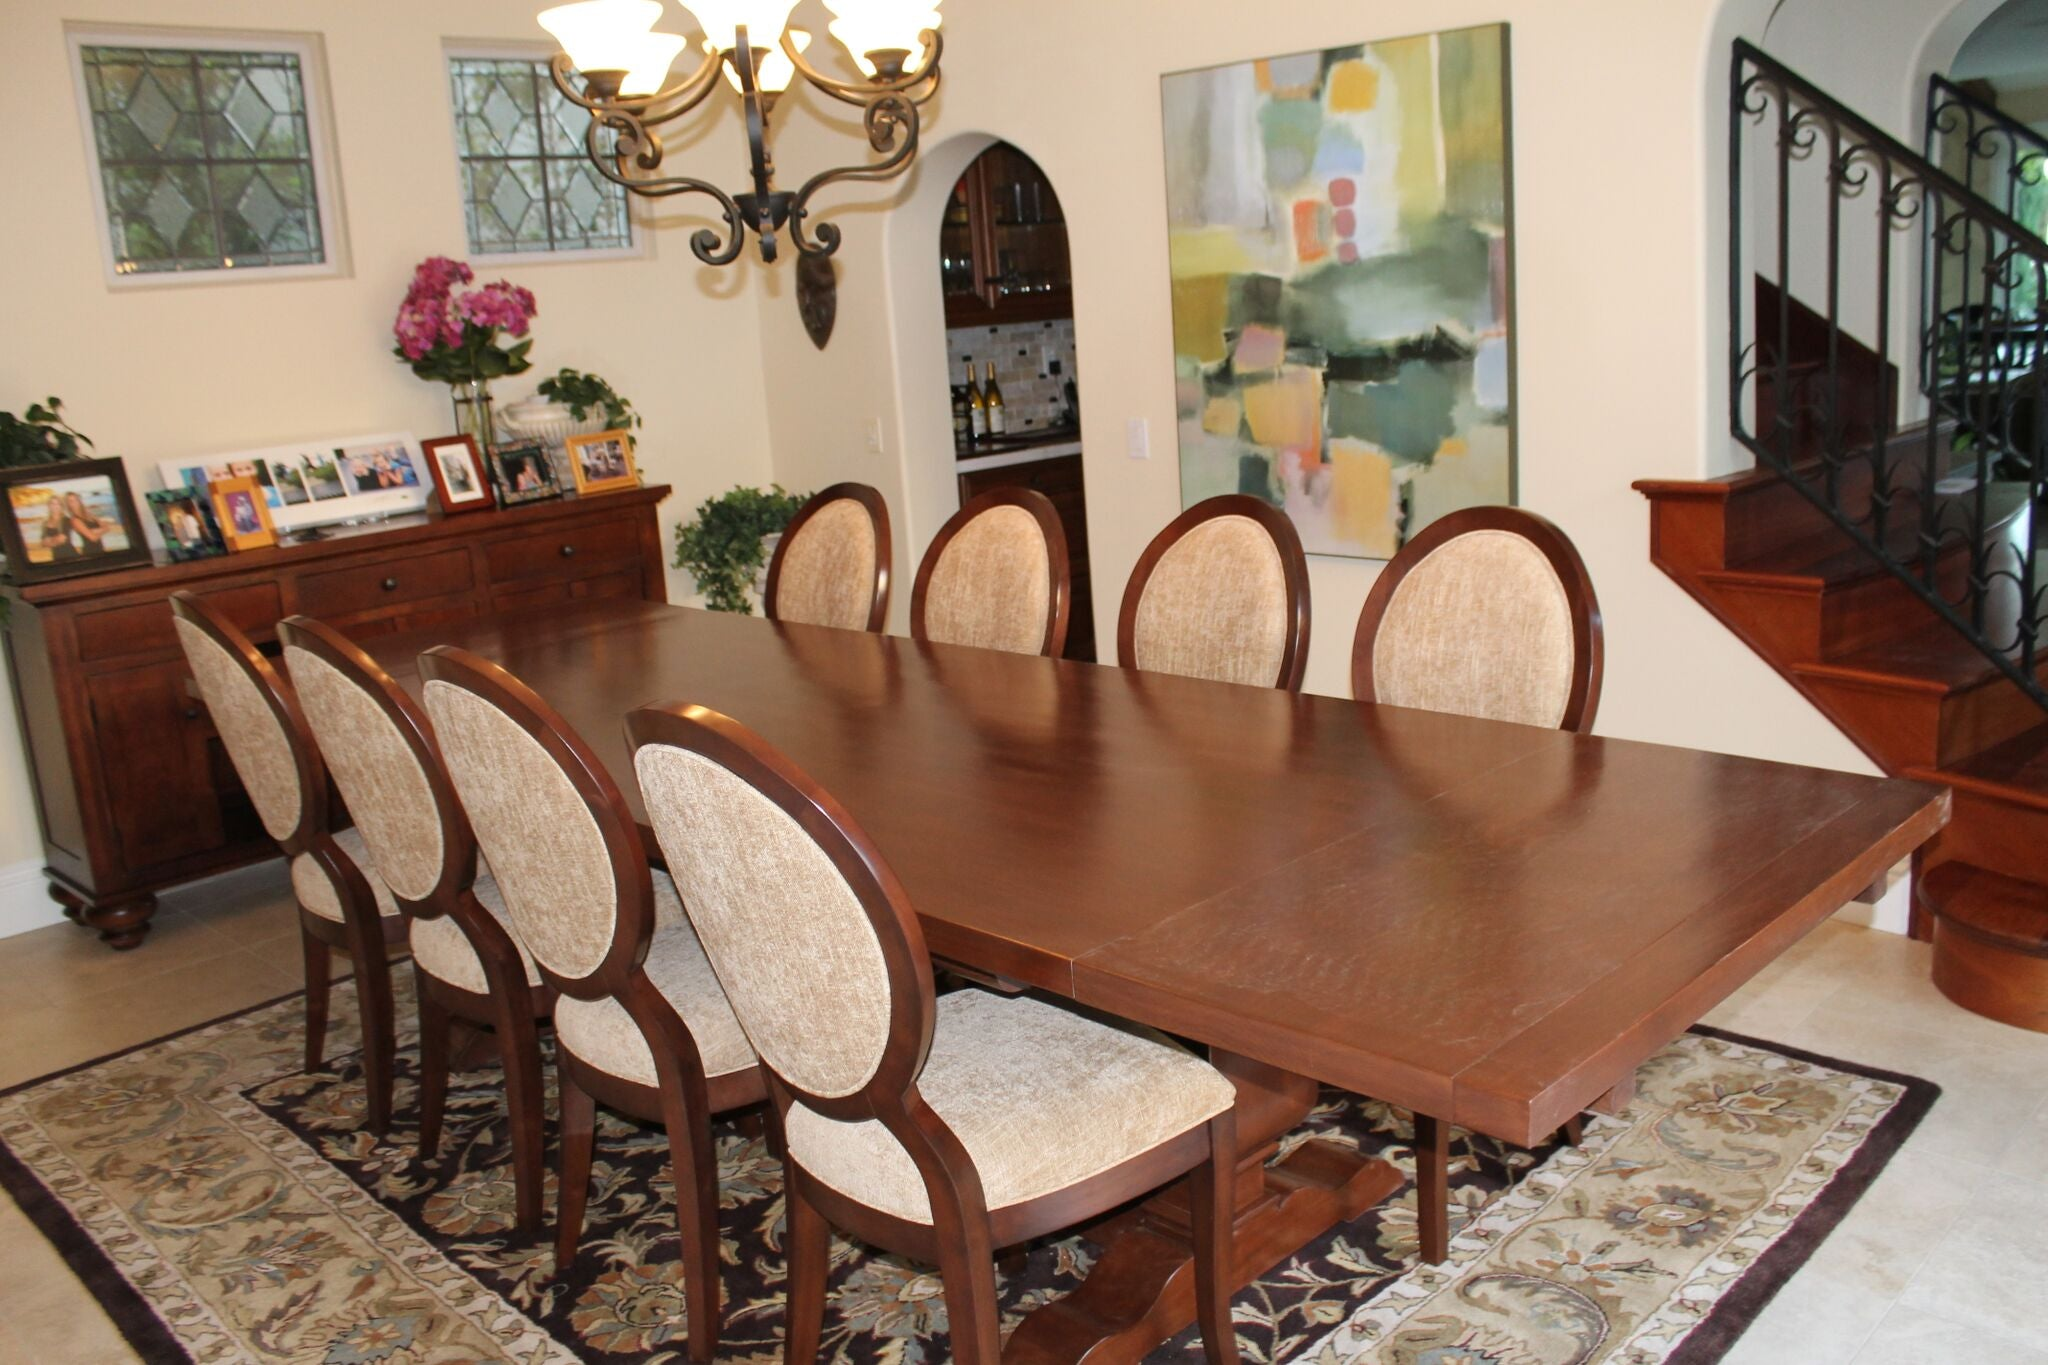 Segovia Dining Table and Chairs